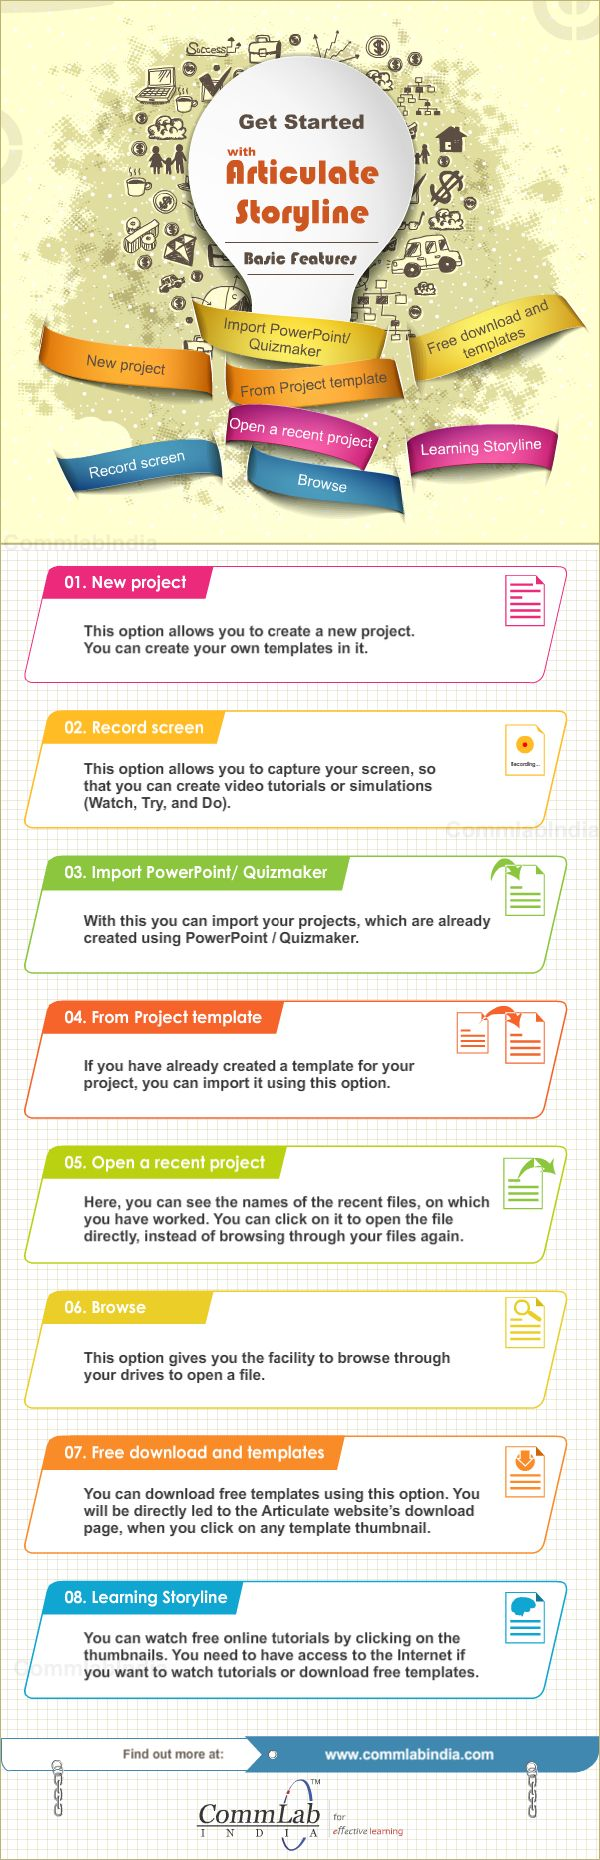 Getting Started With #Articulate Storyline – An #Infographic